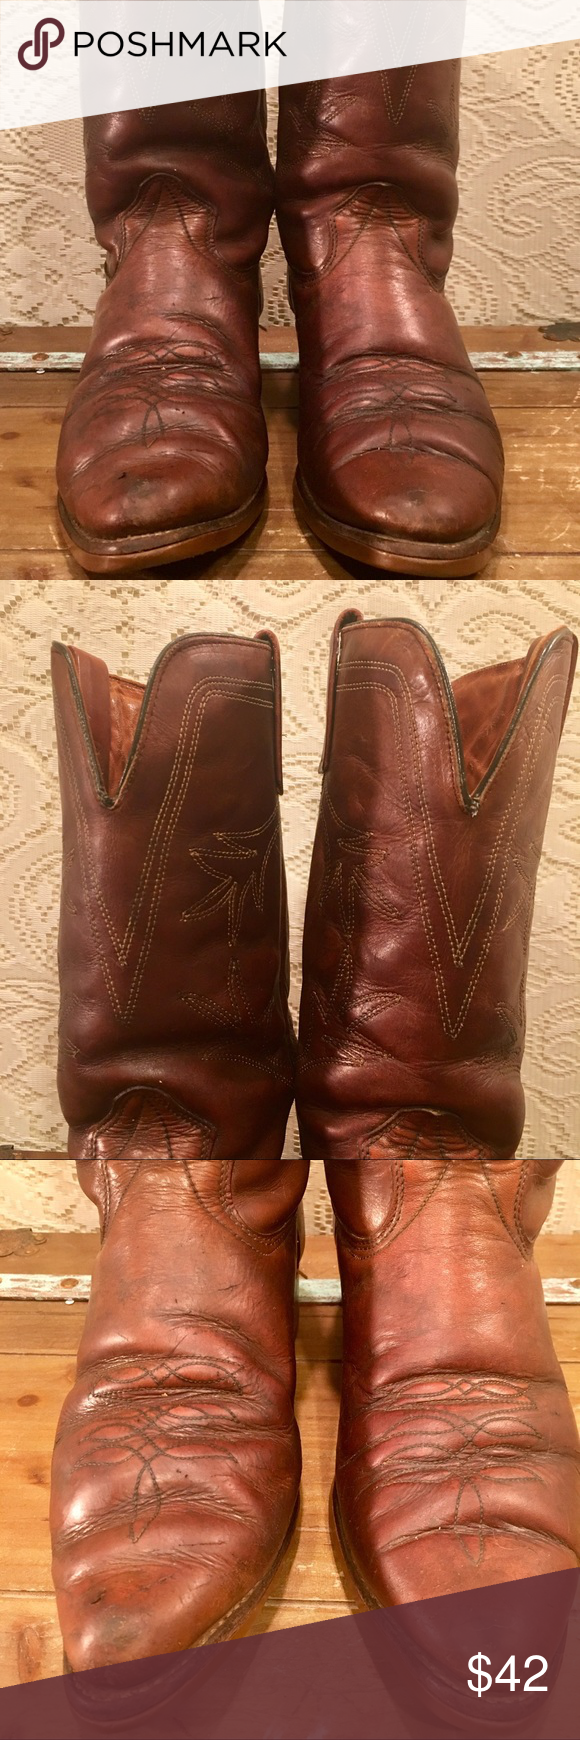 Brown Texas Brand Cowboy Work Boots Size 11 Ee Great Pair Of Broken In Texas Brand Cowboy Boots Perfect For Working On The Ranch Boots Work Boots Texas Brand